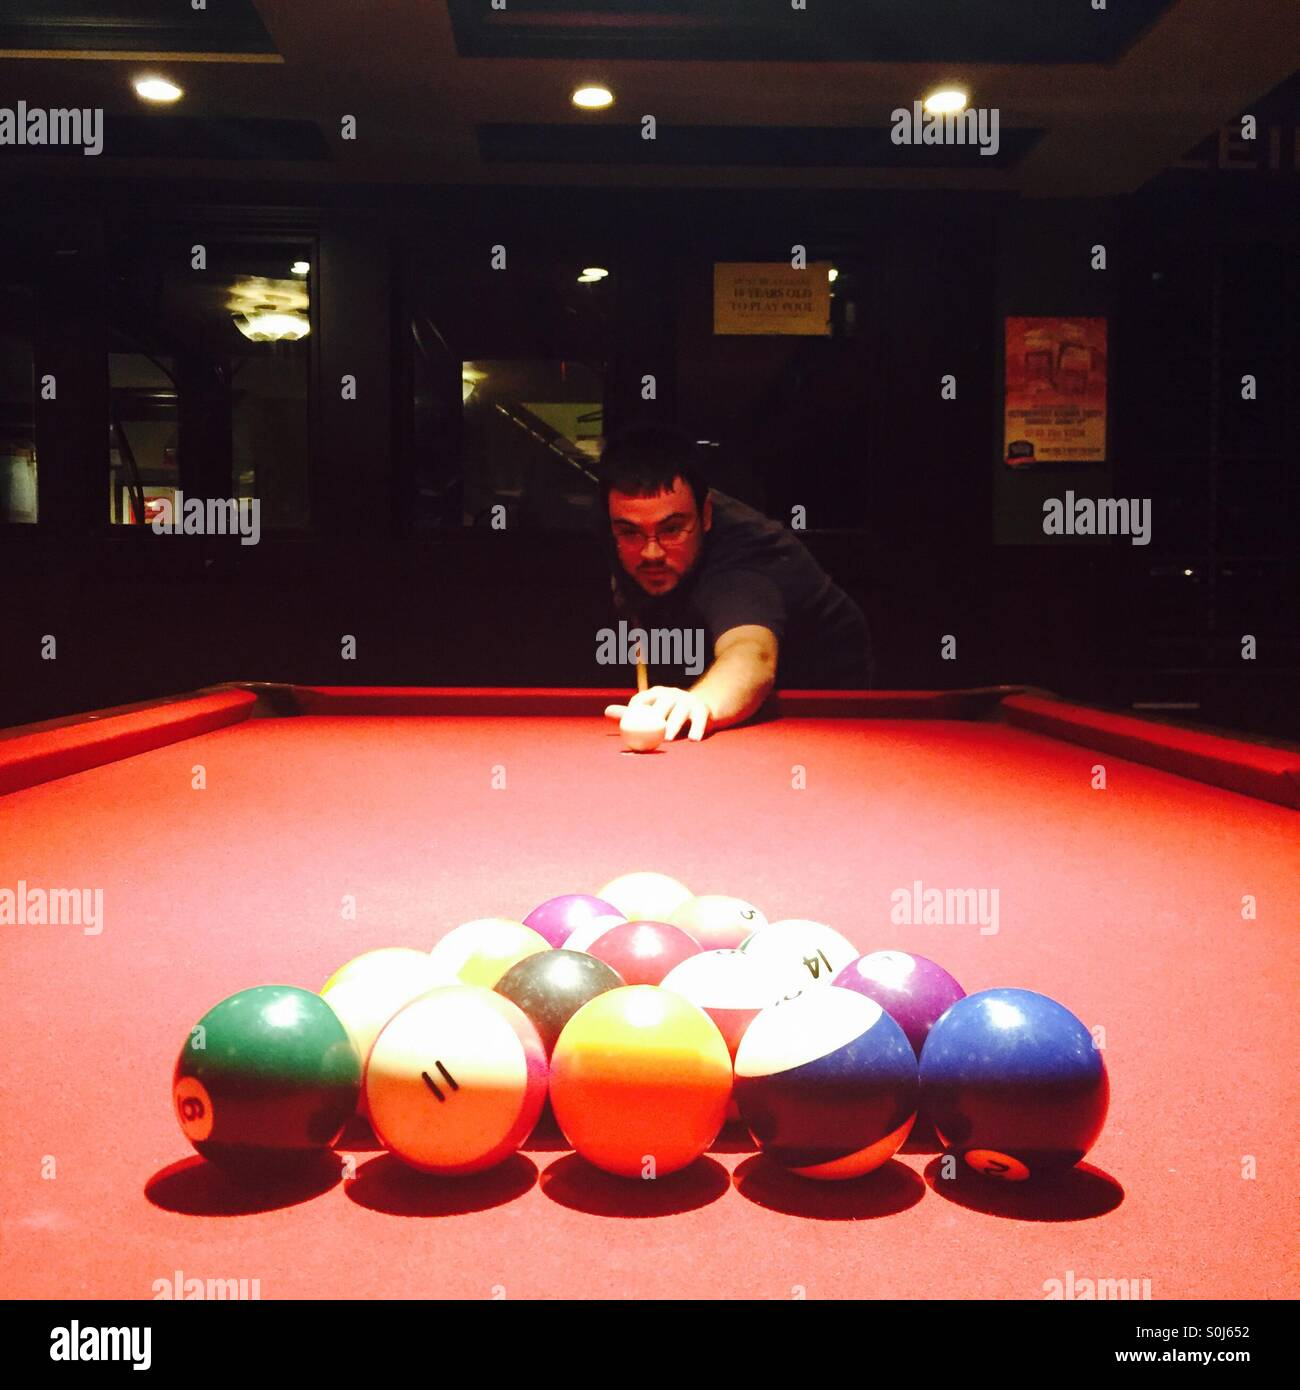 Man prepares to break the rack on a red pool table. - Stock Image